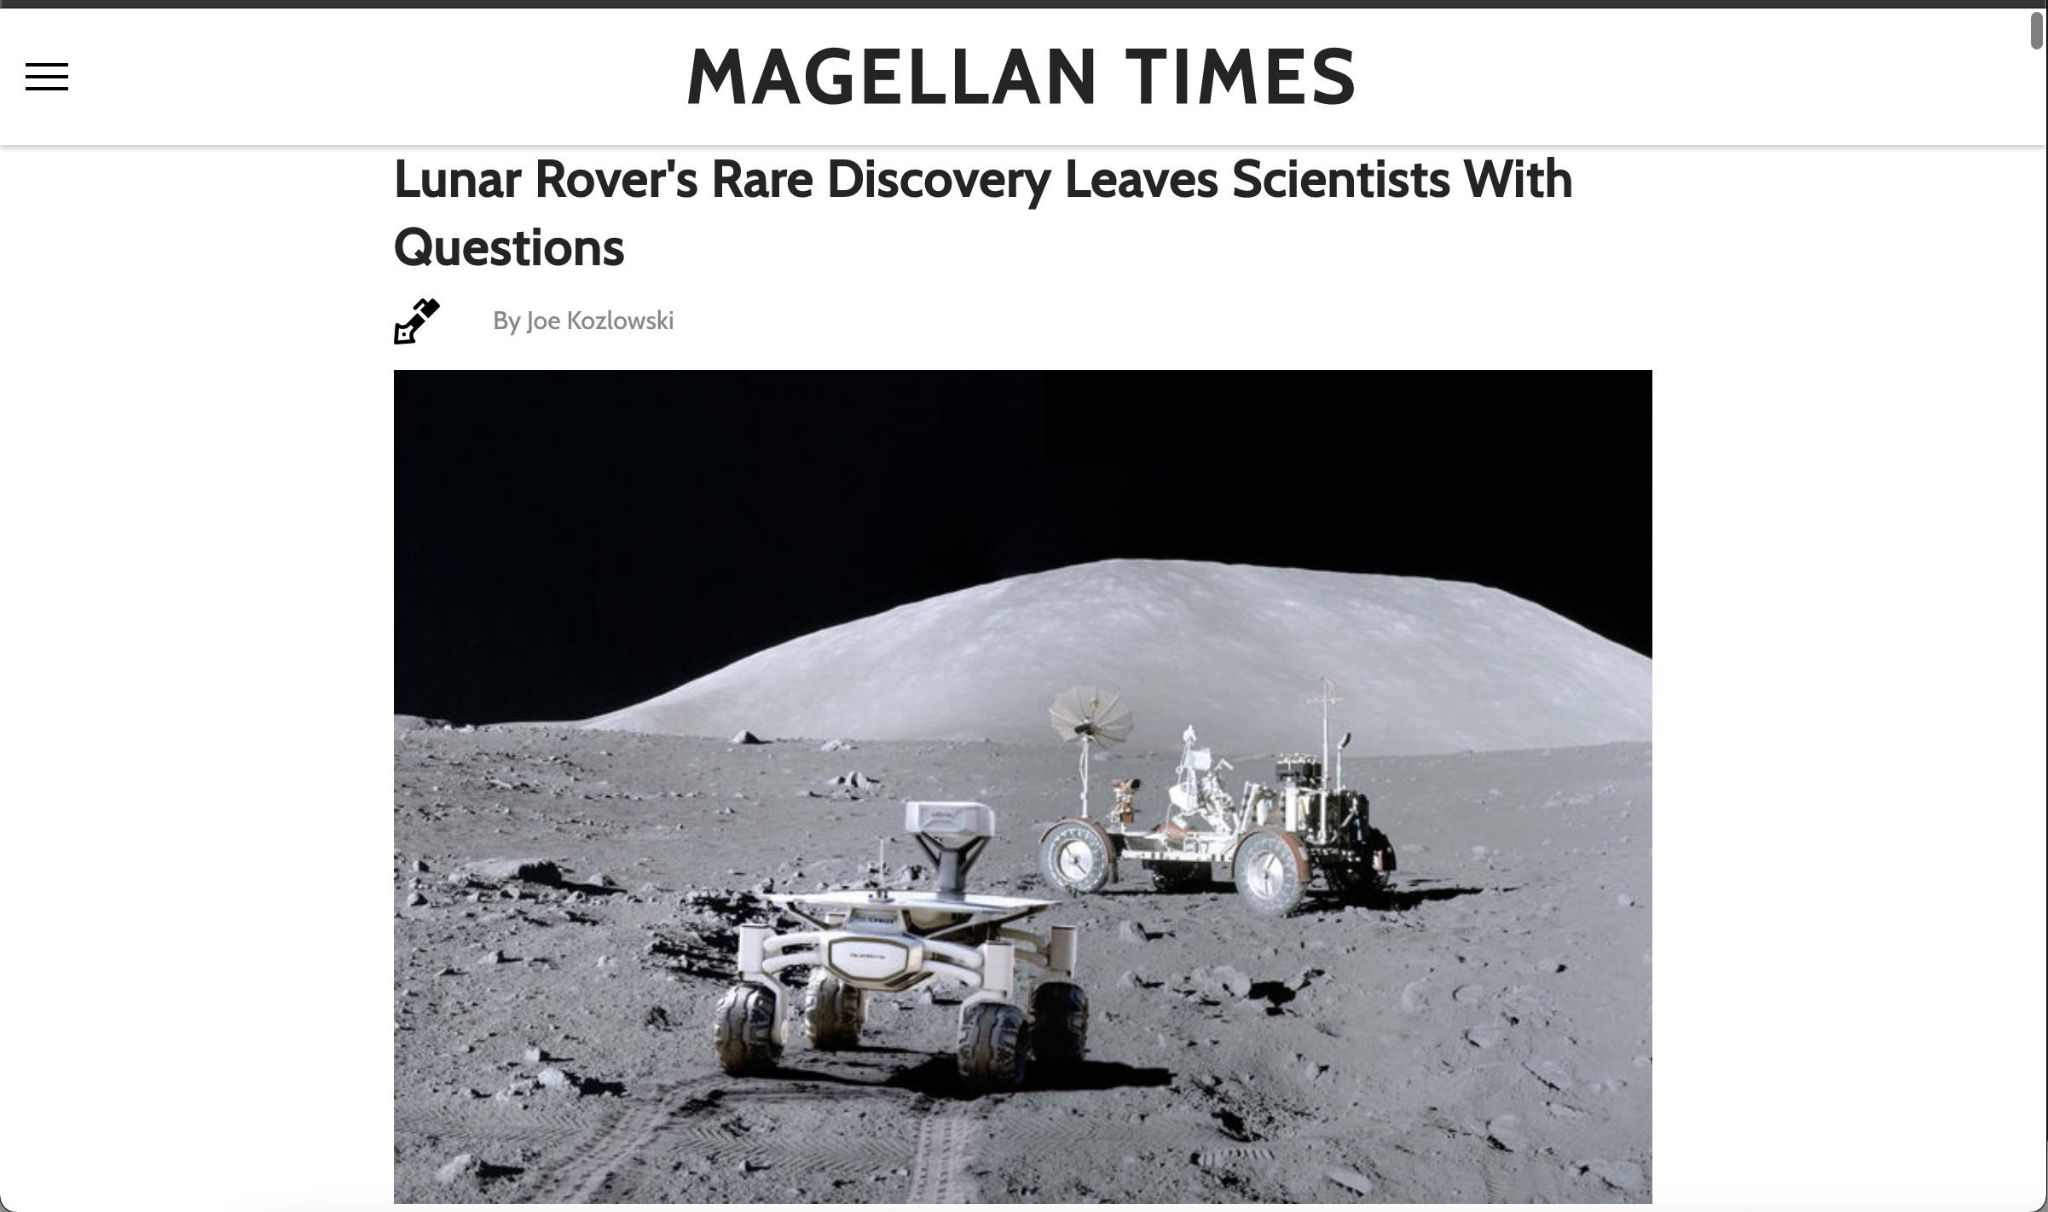 Screenshot of the magellantimes.com, with a direct page navigation. Few to no ads render.